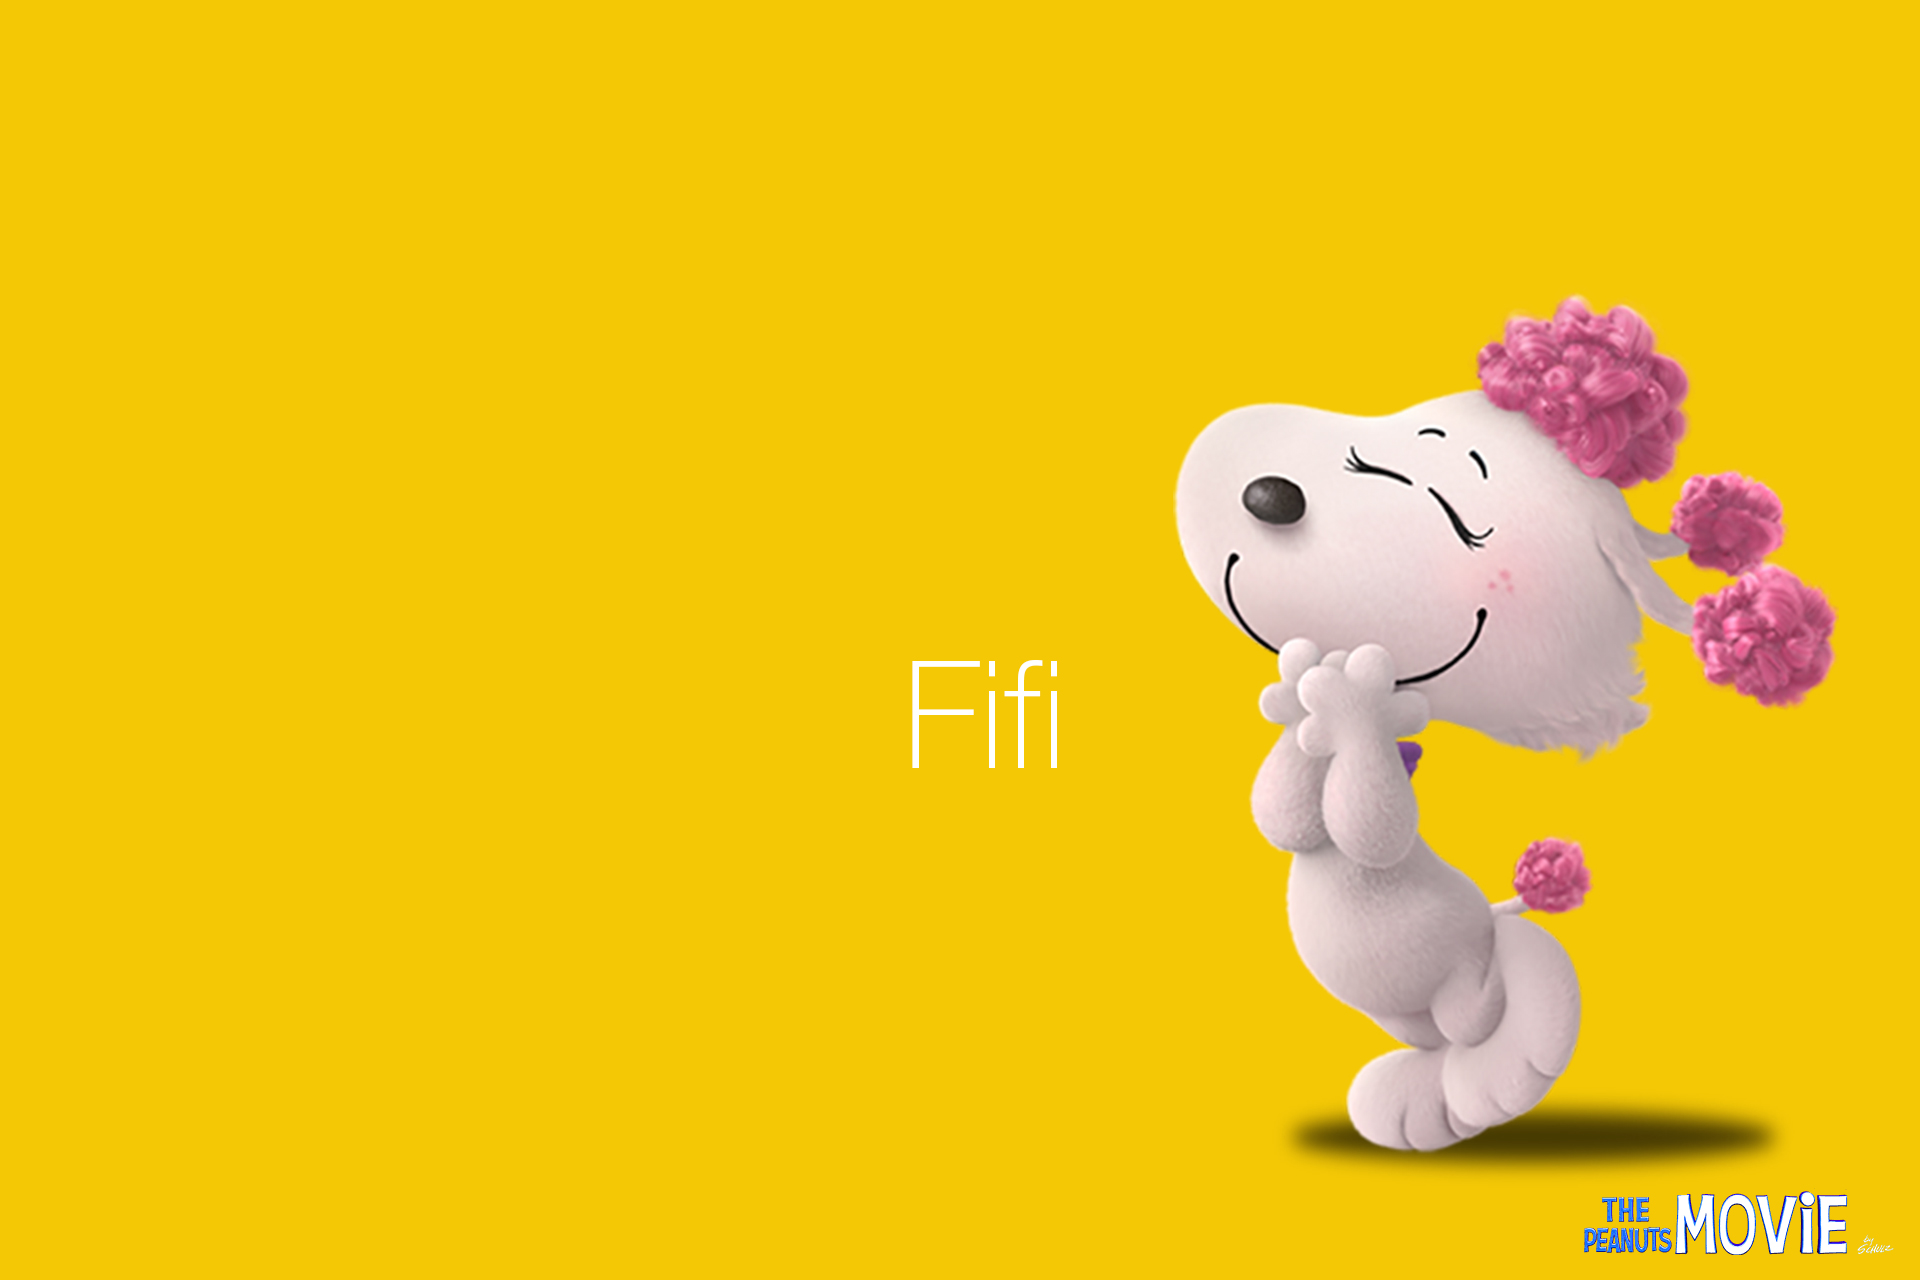 Cute Girl Pic Full Hd Wallpaper The Peanuts Movie Hd Wallpaper Fifi Volganga